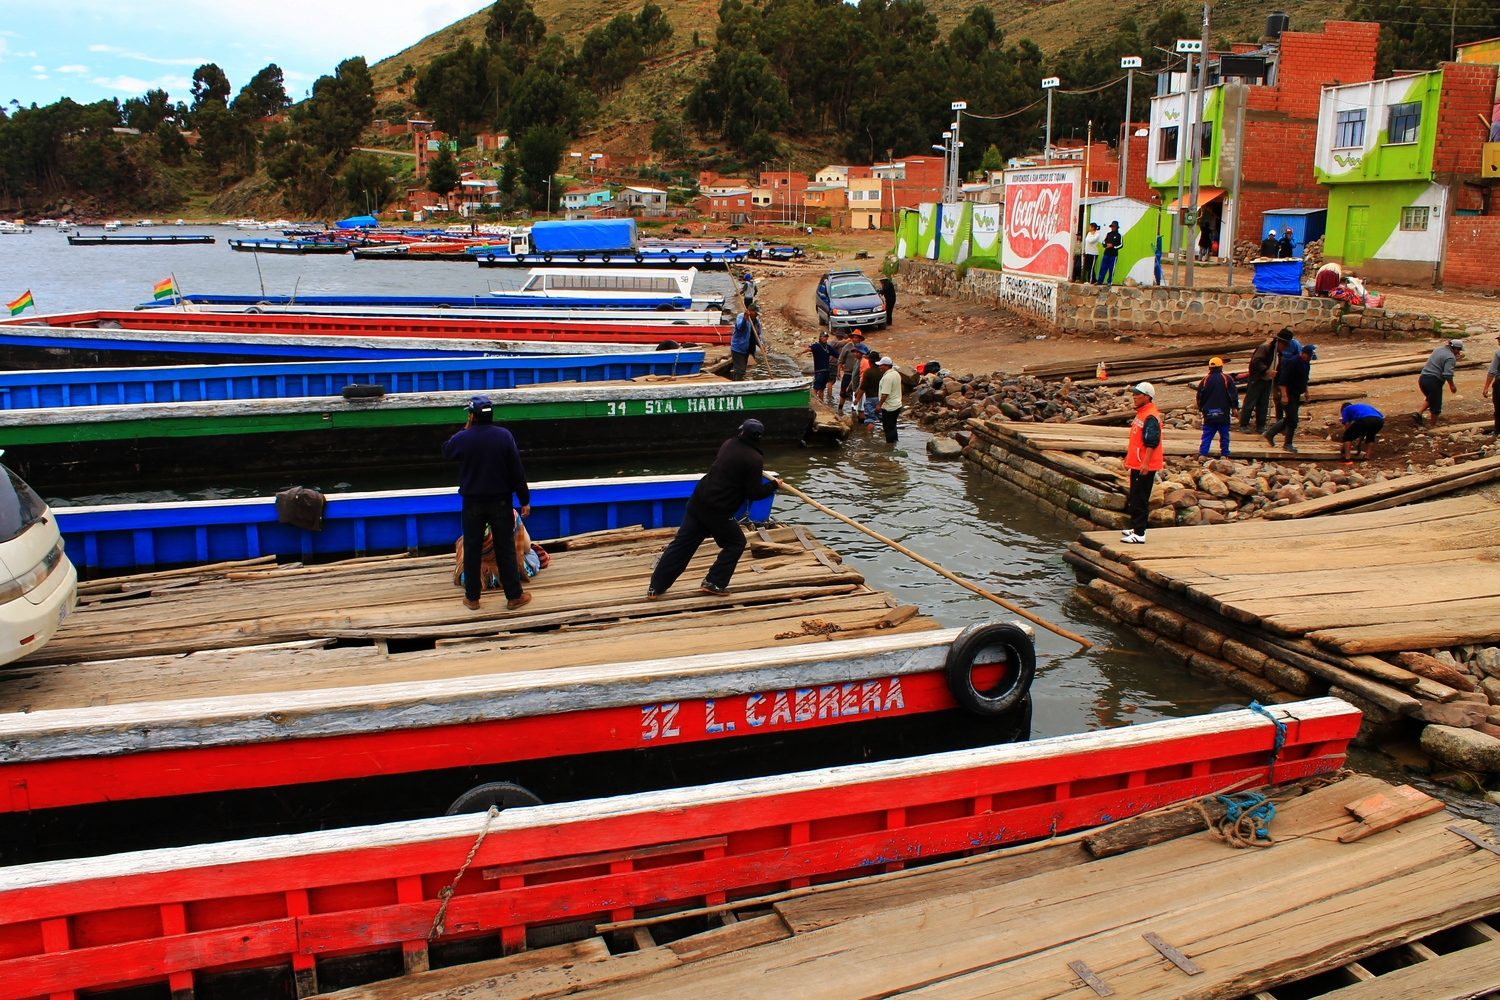 lake titicaca bolivia backpackers travel guide isla del sol ferry budget